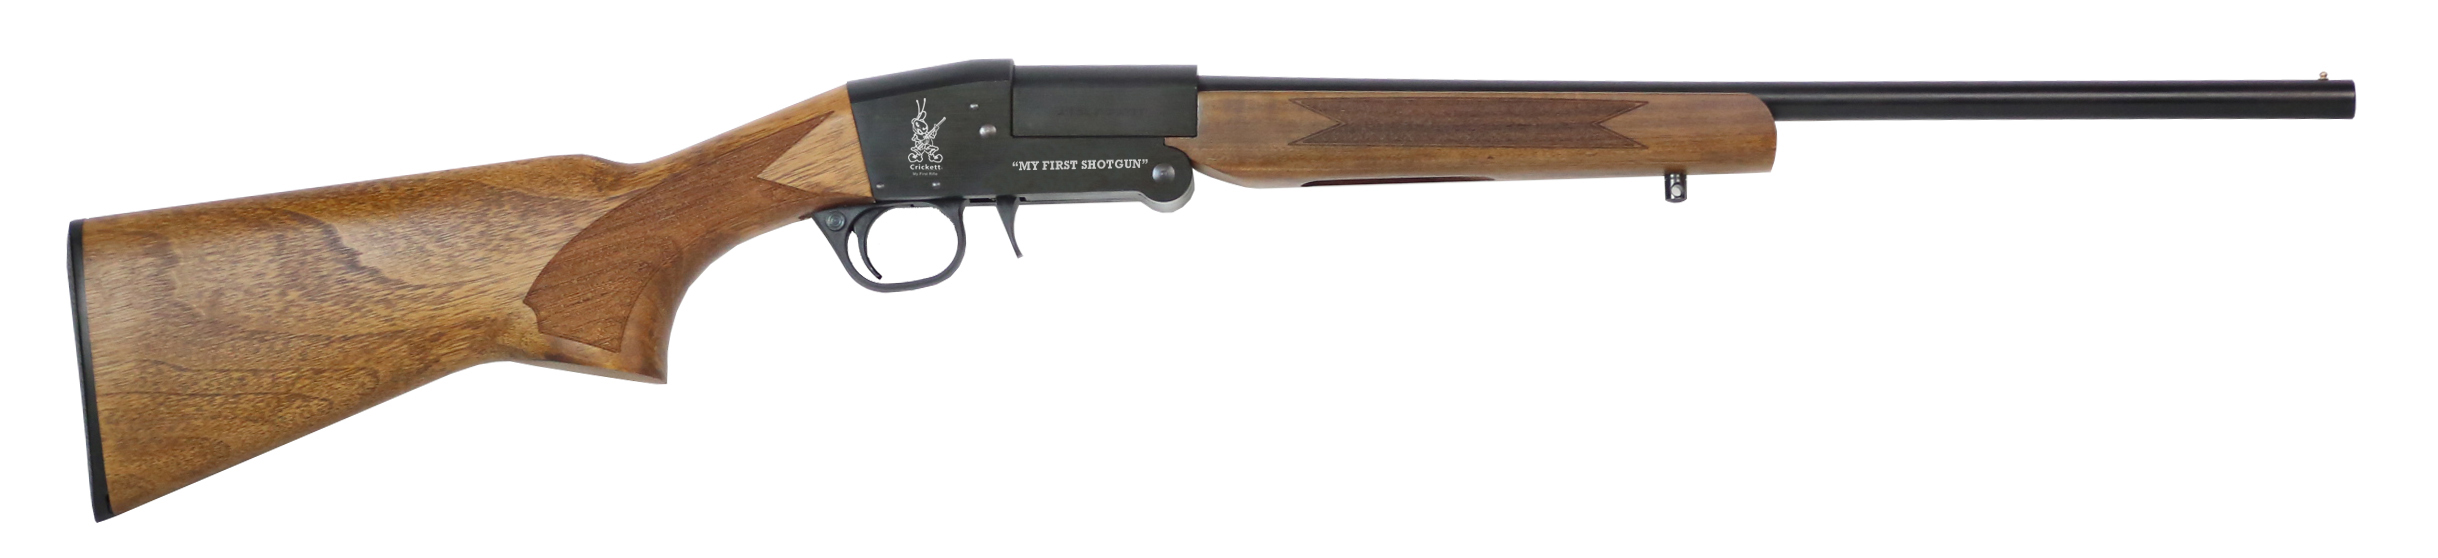 Keystone Sporting Arms Crickett 410 Bore